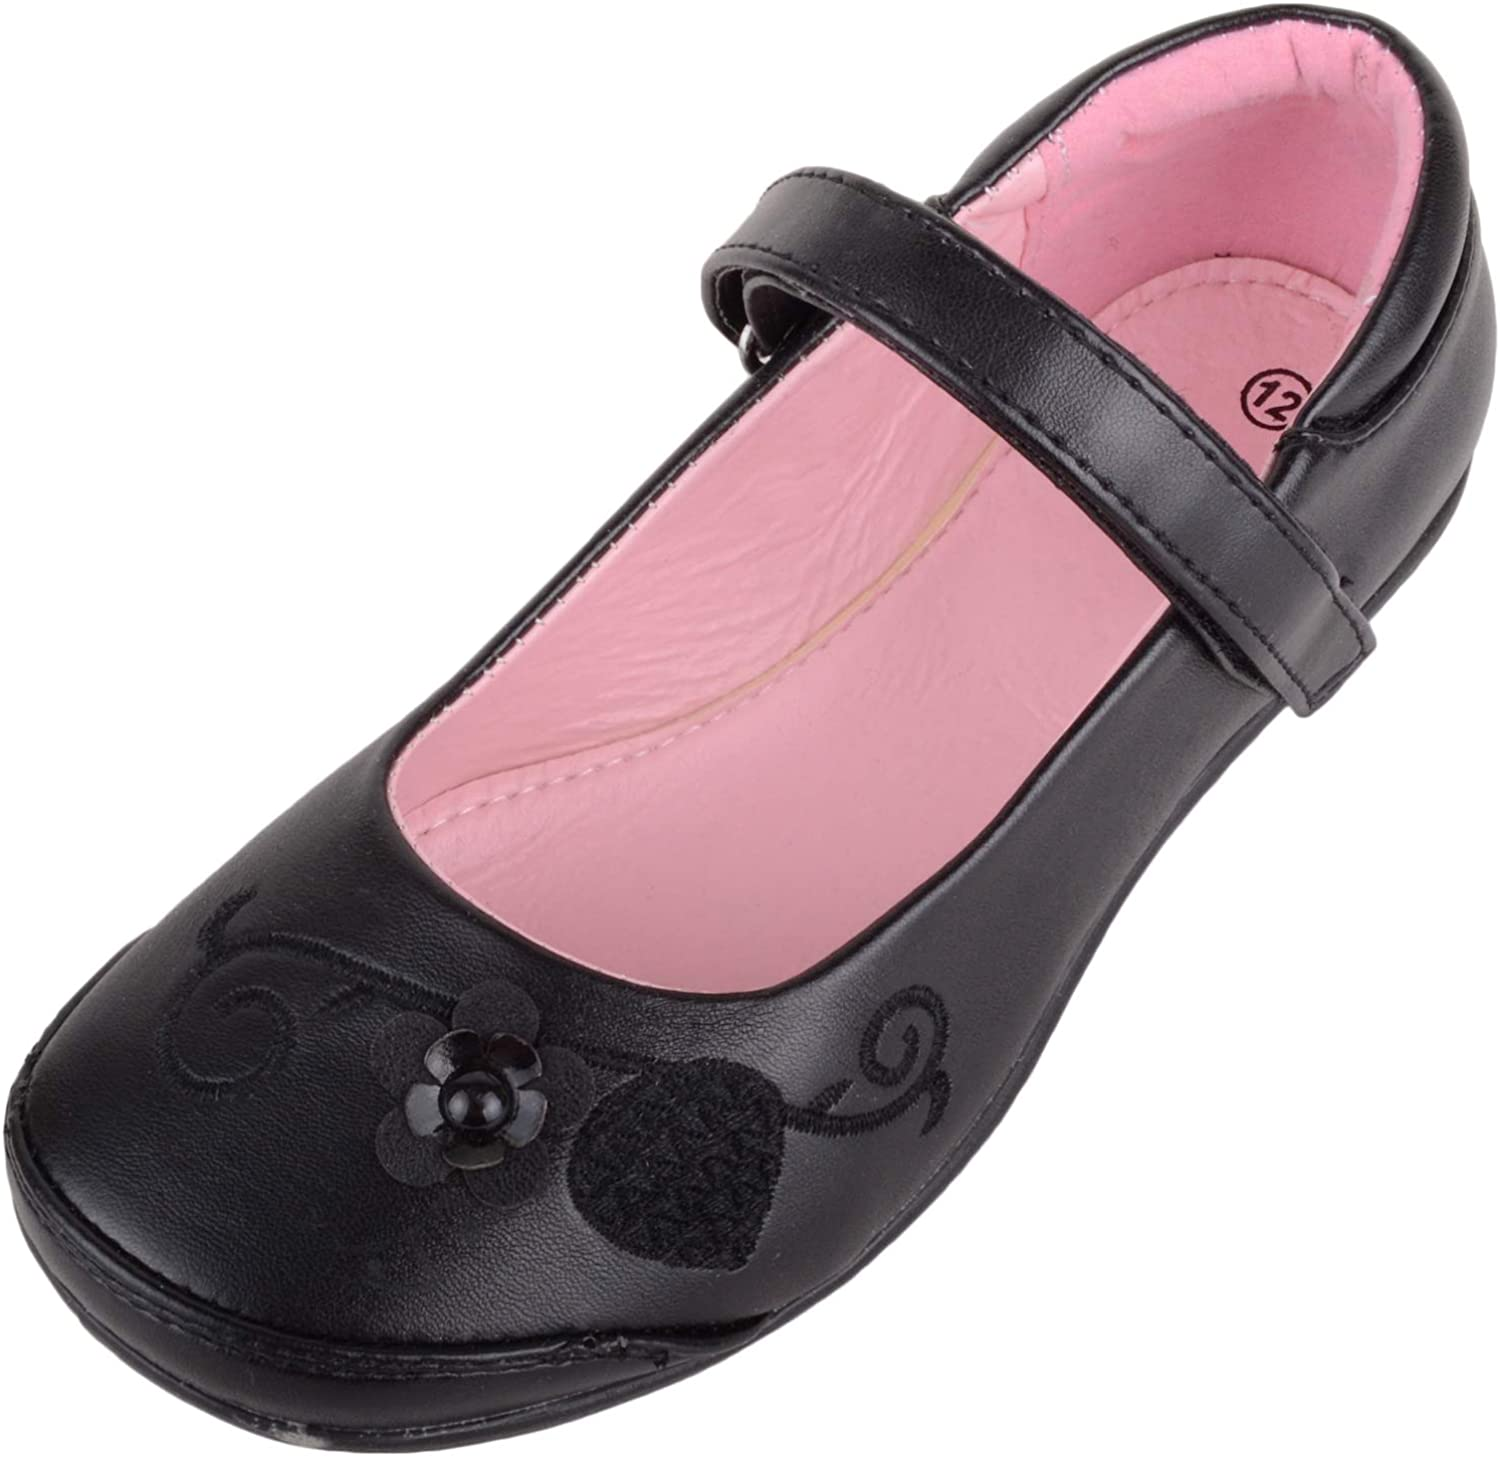 childrens shoes for school